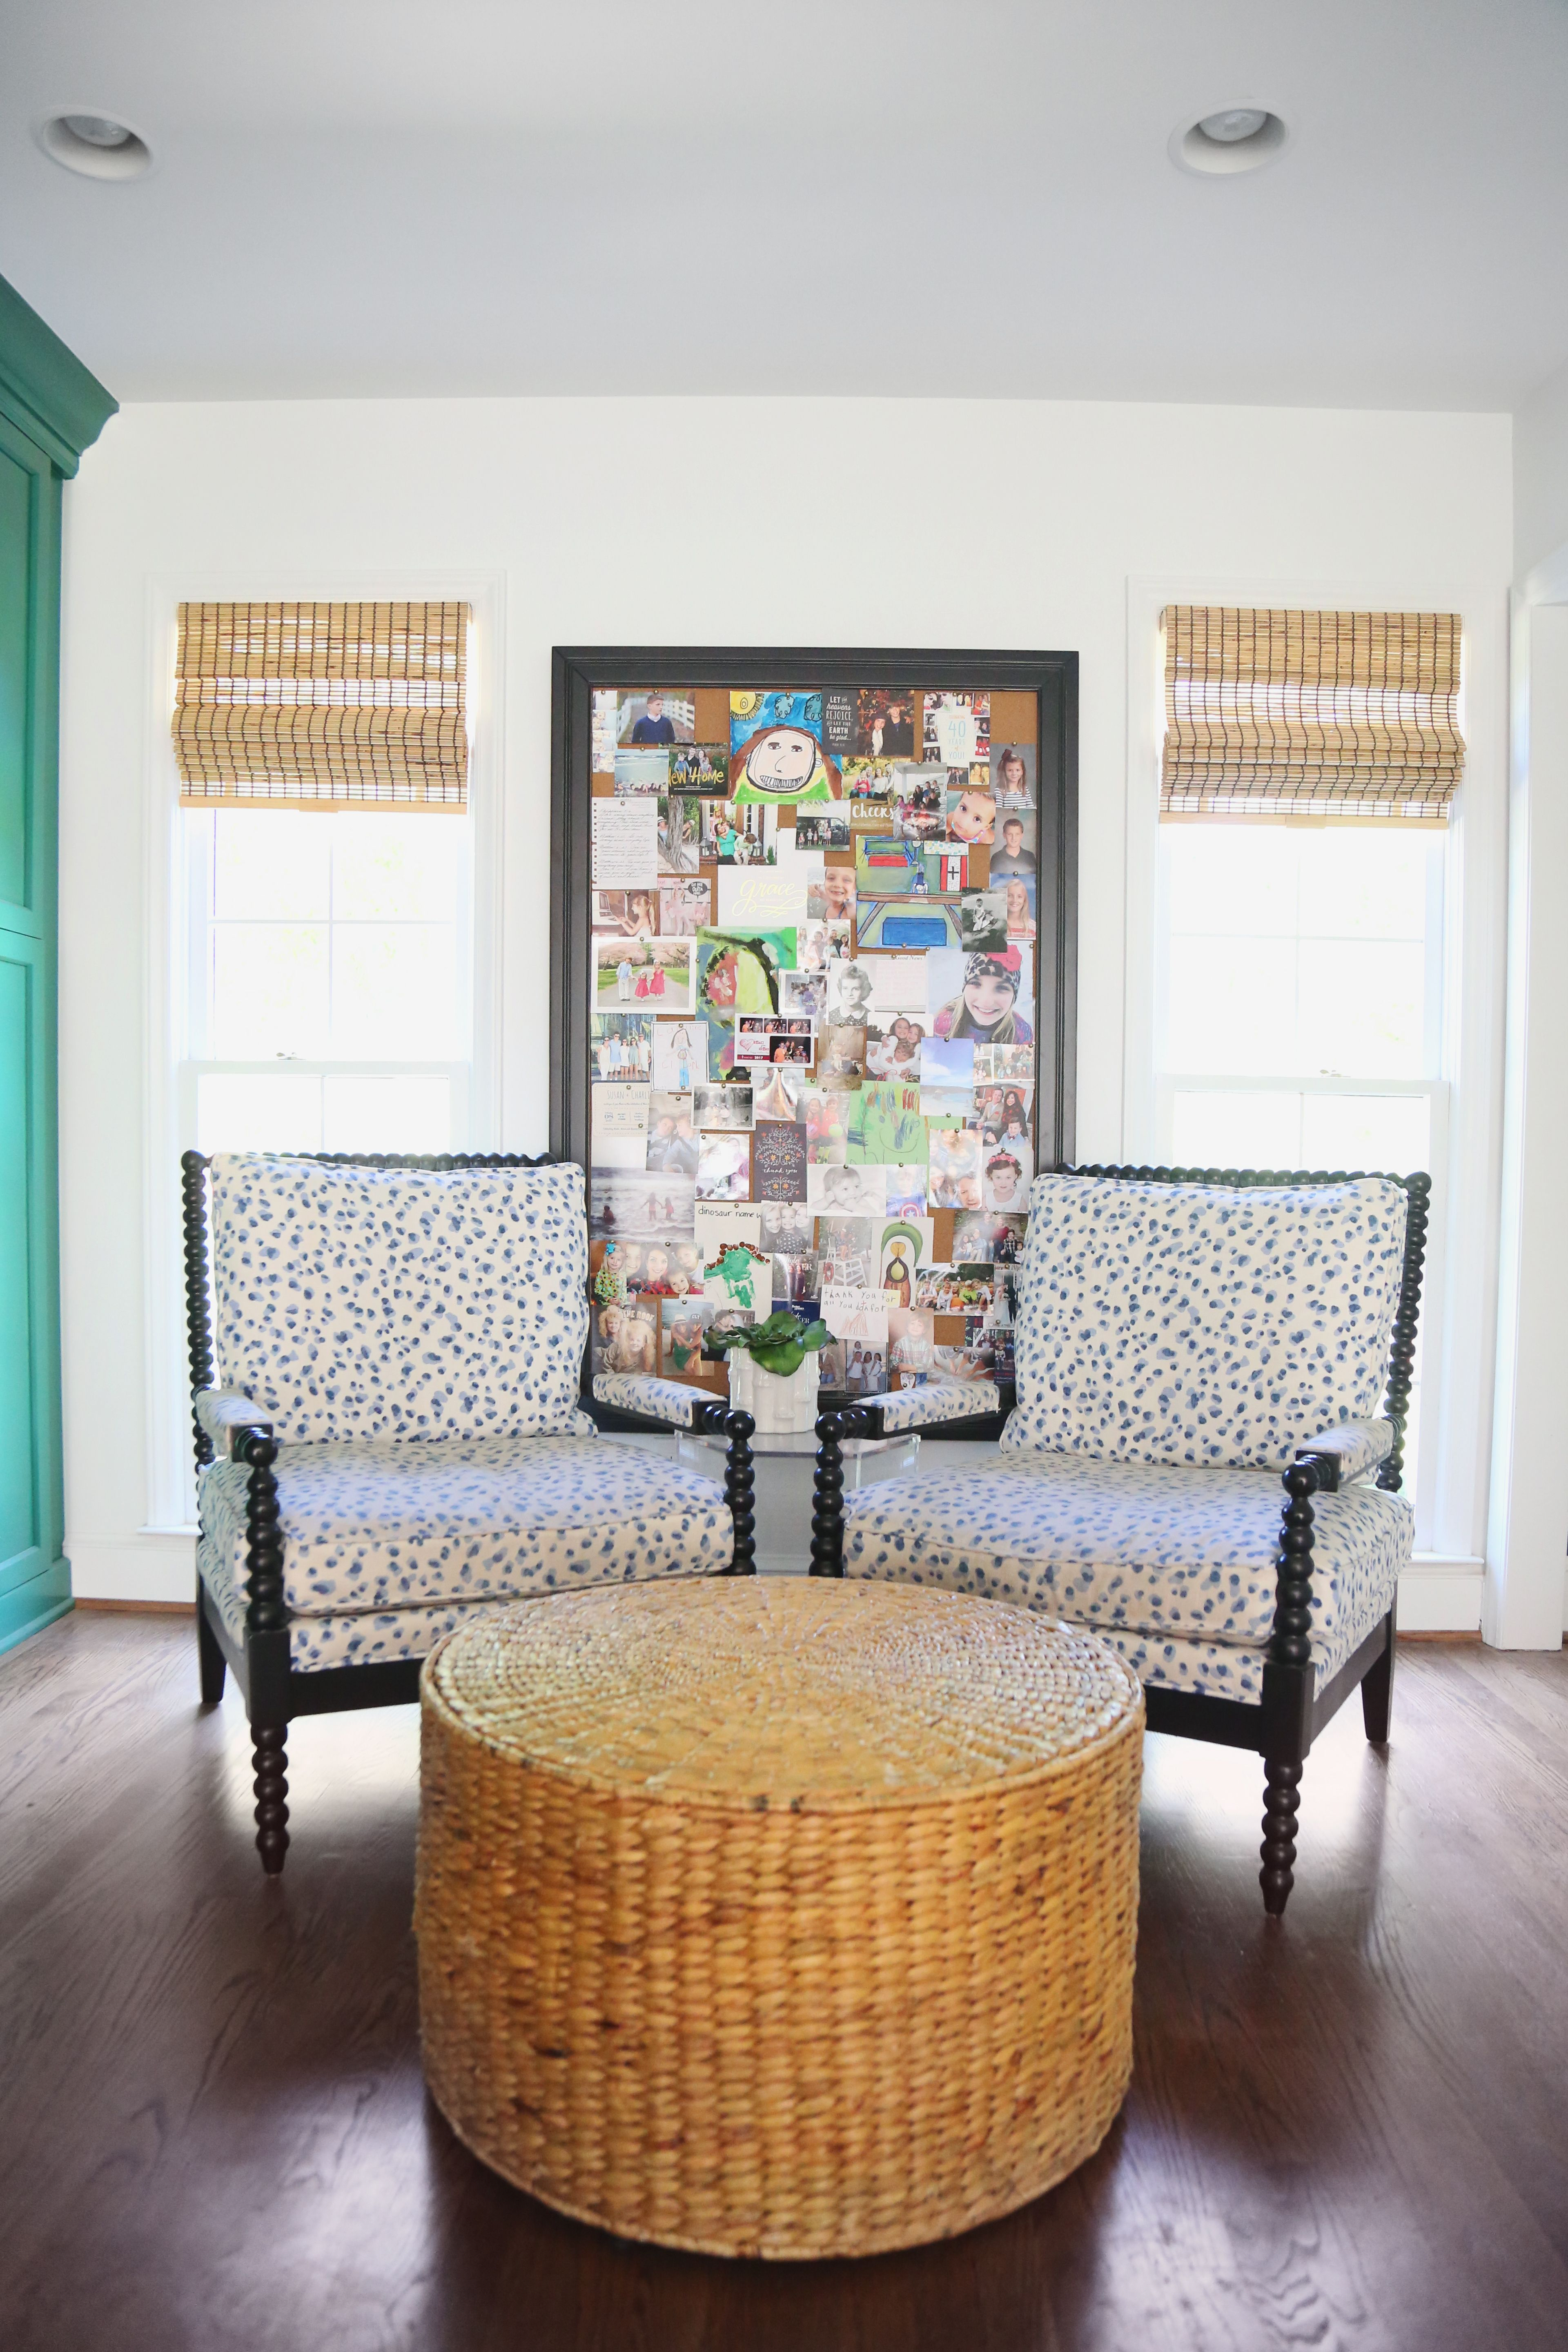 Our Green and White Kitchen Renovation | Spool chair, Keeping room ...